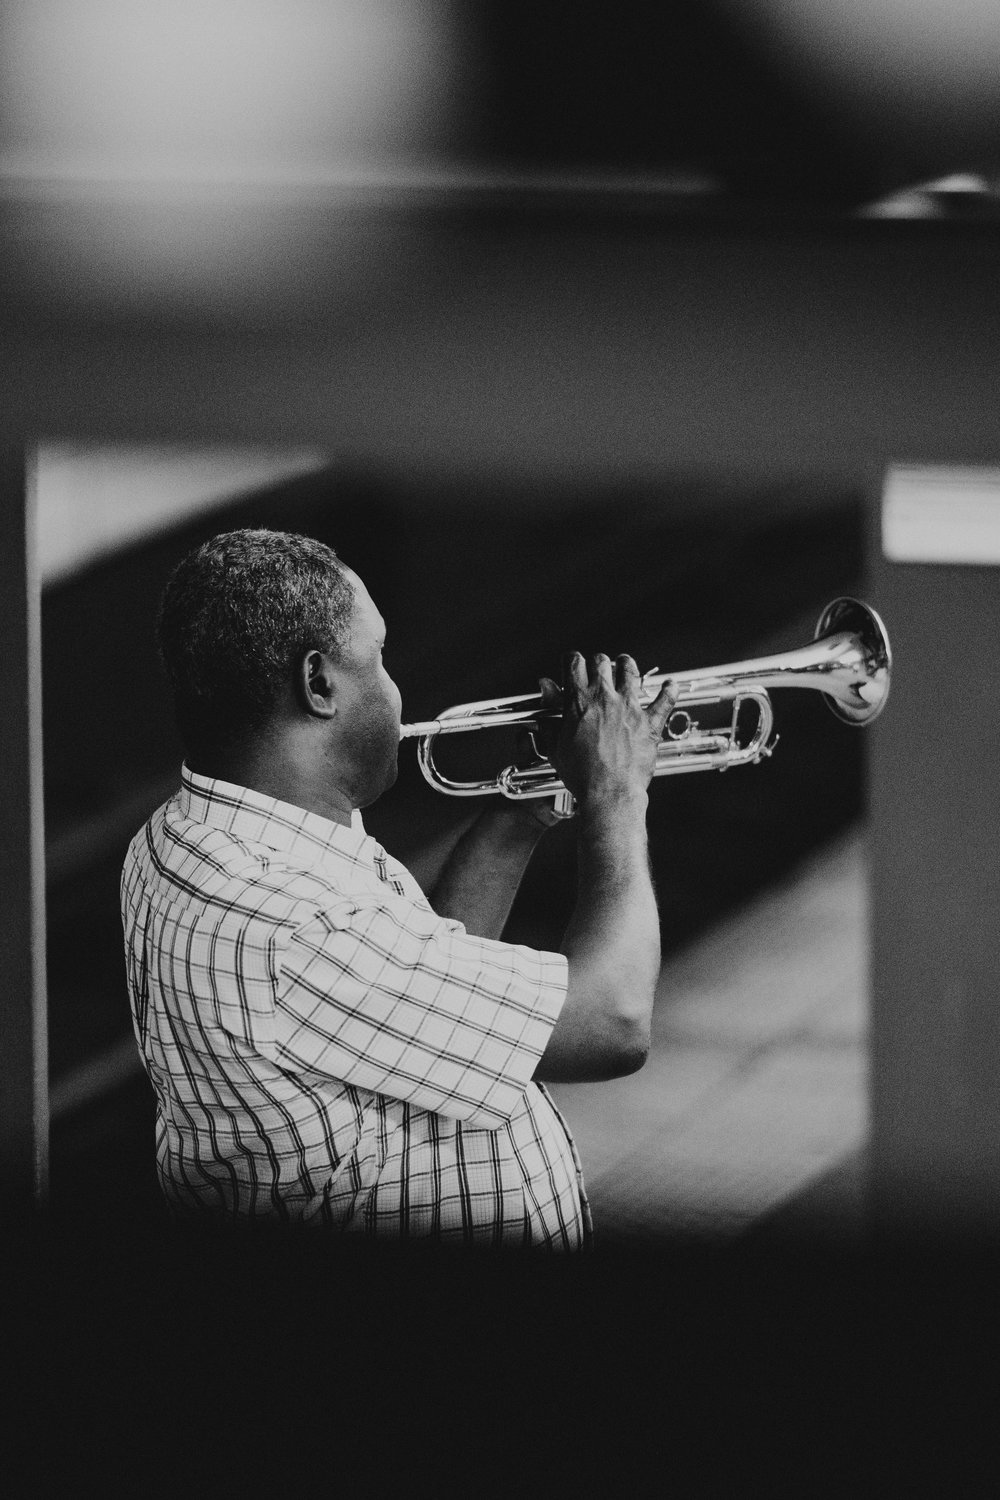 When the trumpet sounds... - Photo by Ryan Loughlin